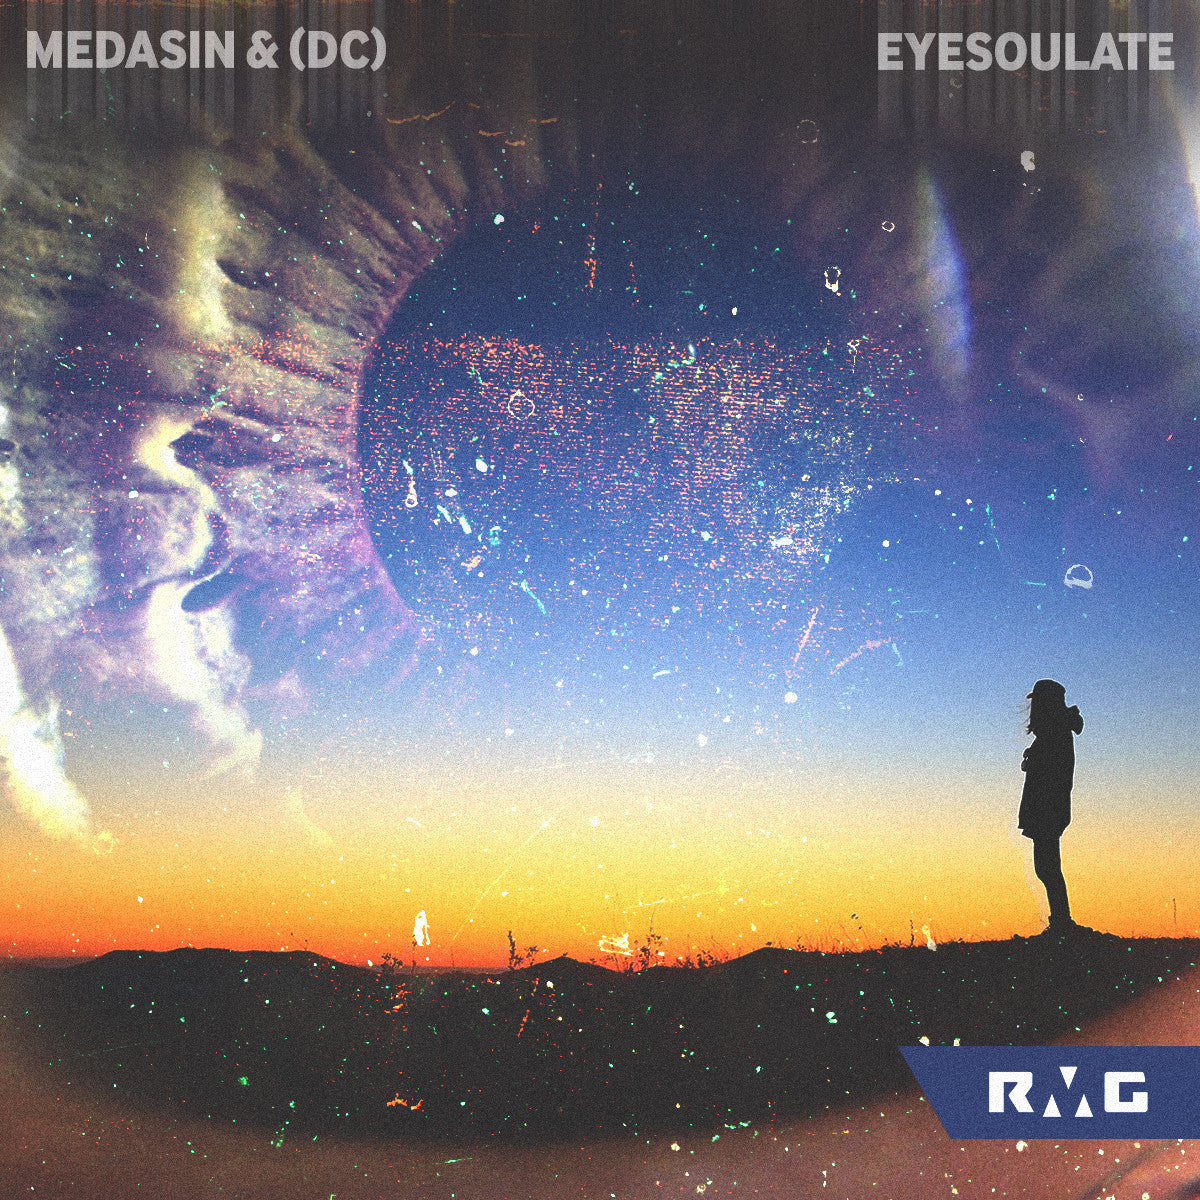 SINGLE - Medasin & (DC) - Eyesoulate